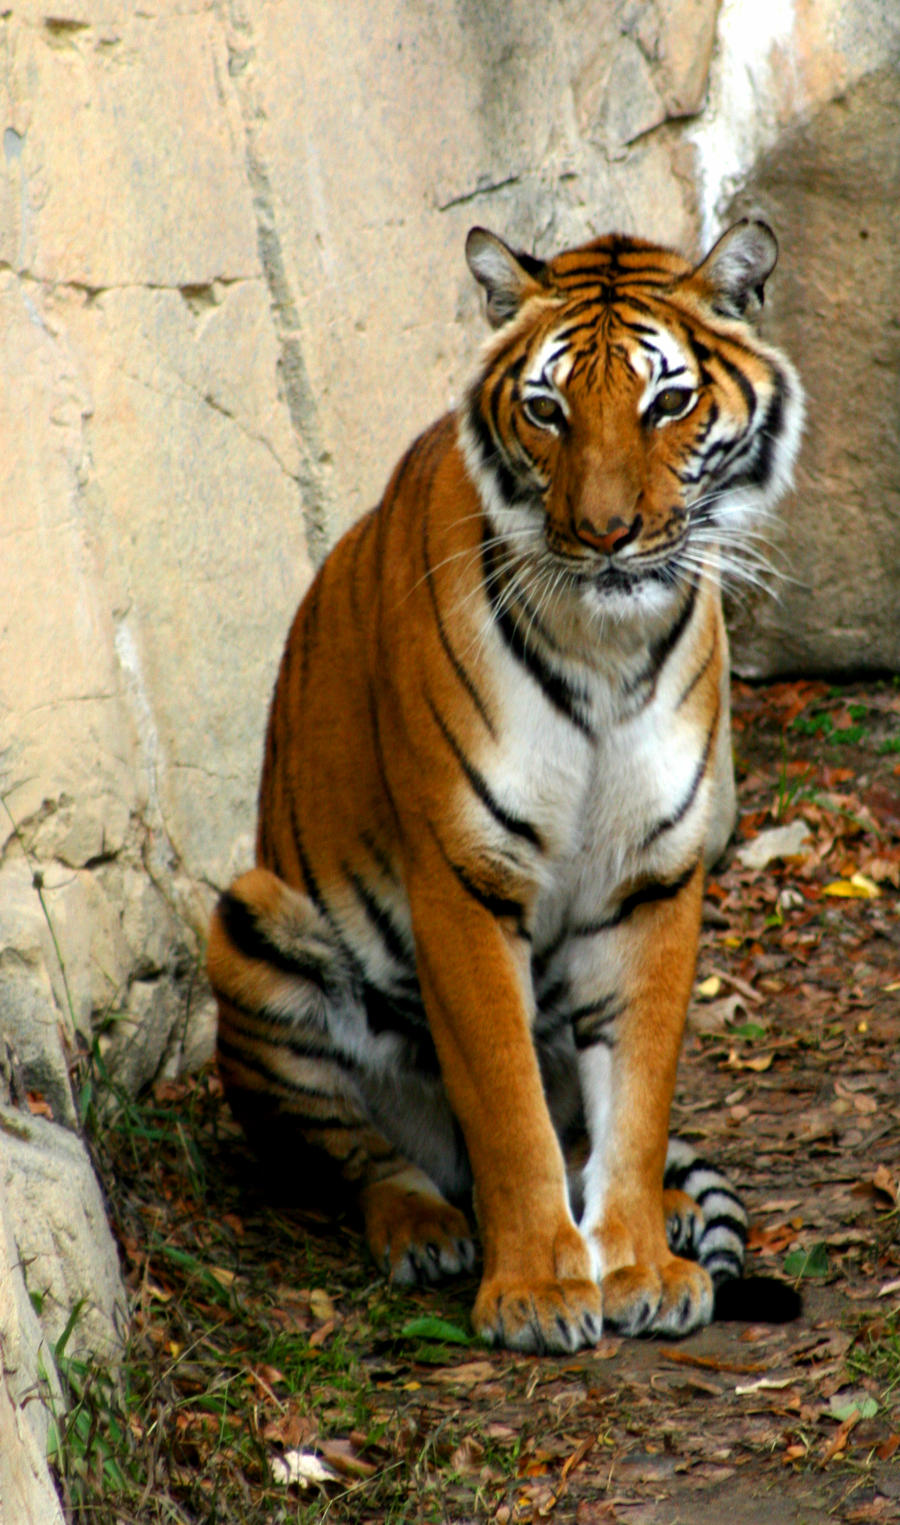 Sitting Tiger 2 By Tlcphotography730 On Deviantart